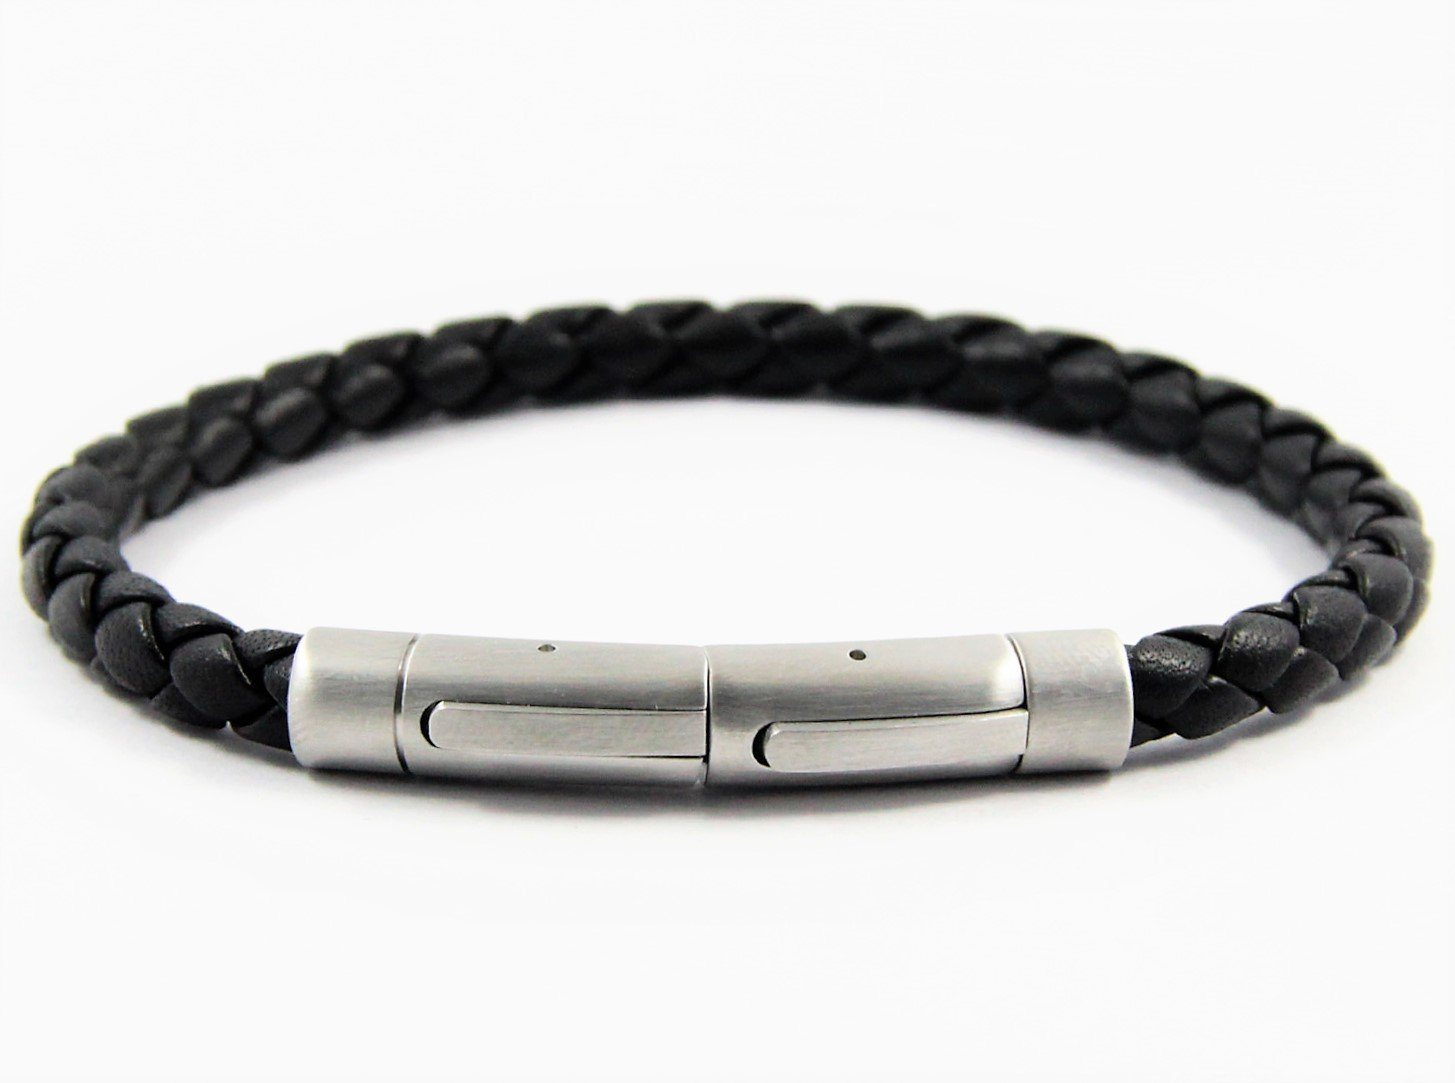 magnetic leather plaited bracelet in black which is adjustable